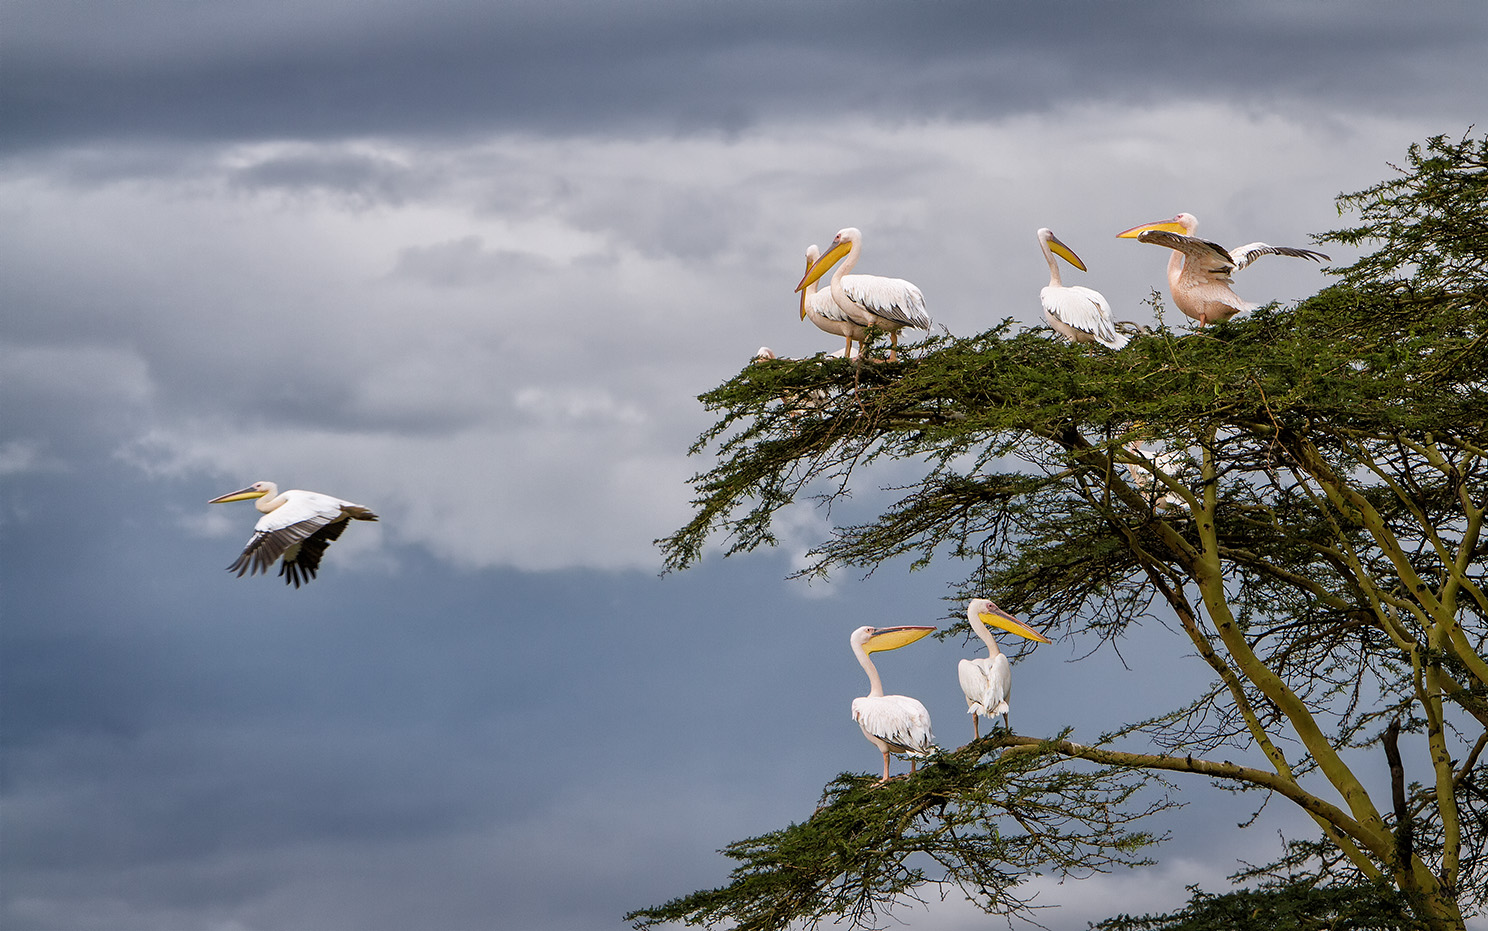 Photo: Lake Nakuru Pelicans, Kenya  I posted an image of pelicans soon after I returned from Kenya, and it was well received--I hope you enjoy this one as well with the in-flight bird. These birds were very active and constantly flying in and out of this tree located at the shore of the lake.  #flybyfriday   curated by +John Spade  #birds4all   curated by +Walter Soestbergen  #HQSPbirds   curated by +Marina Versaci  +Joe Urbz  #birdloversworldwide +BIRD LOVERS Worldwide curated by +Robert SKREINER #10000photographersaroundtheworld +10000 PHOTOGRAPHERS around the World curated by +Robert SKREINER